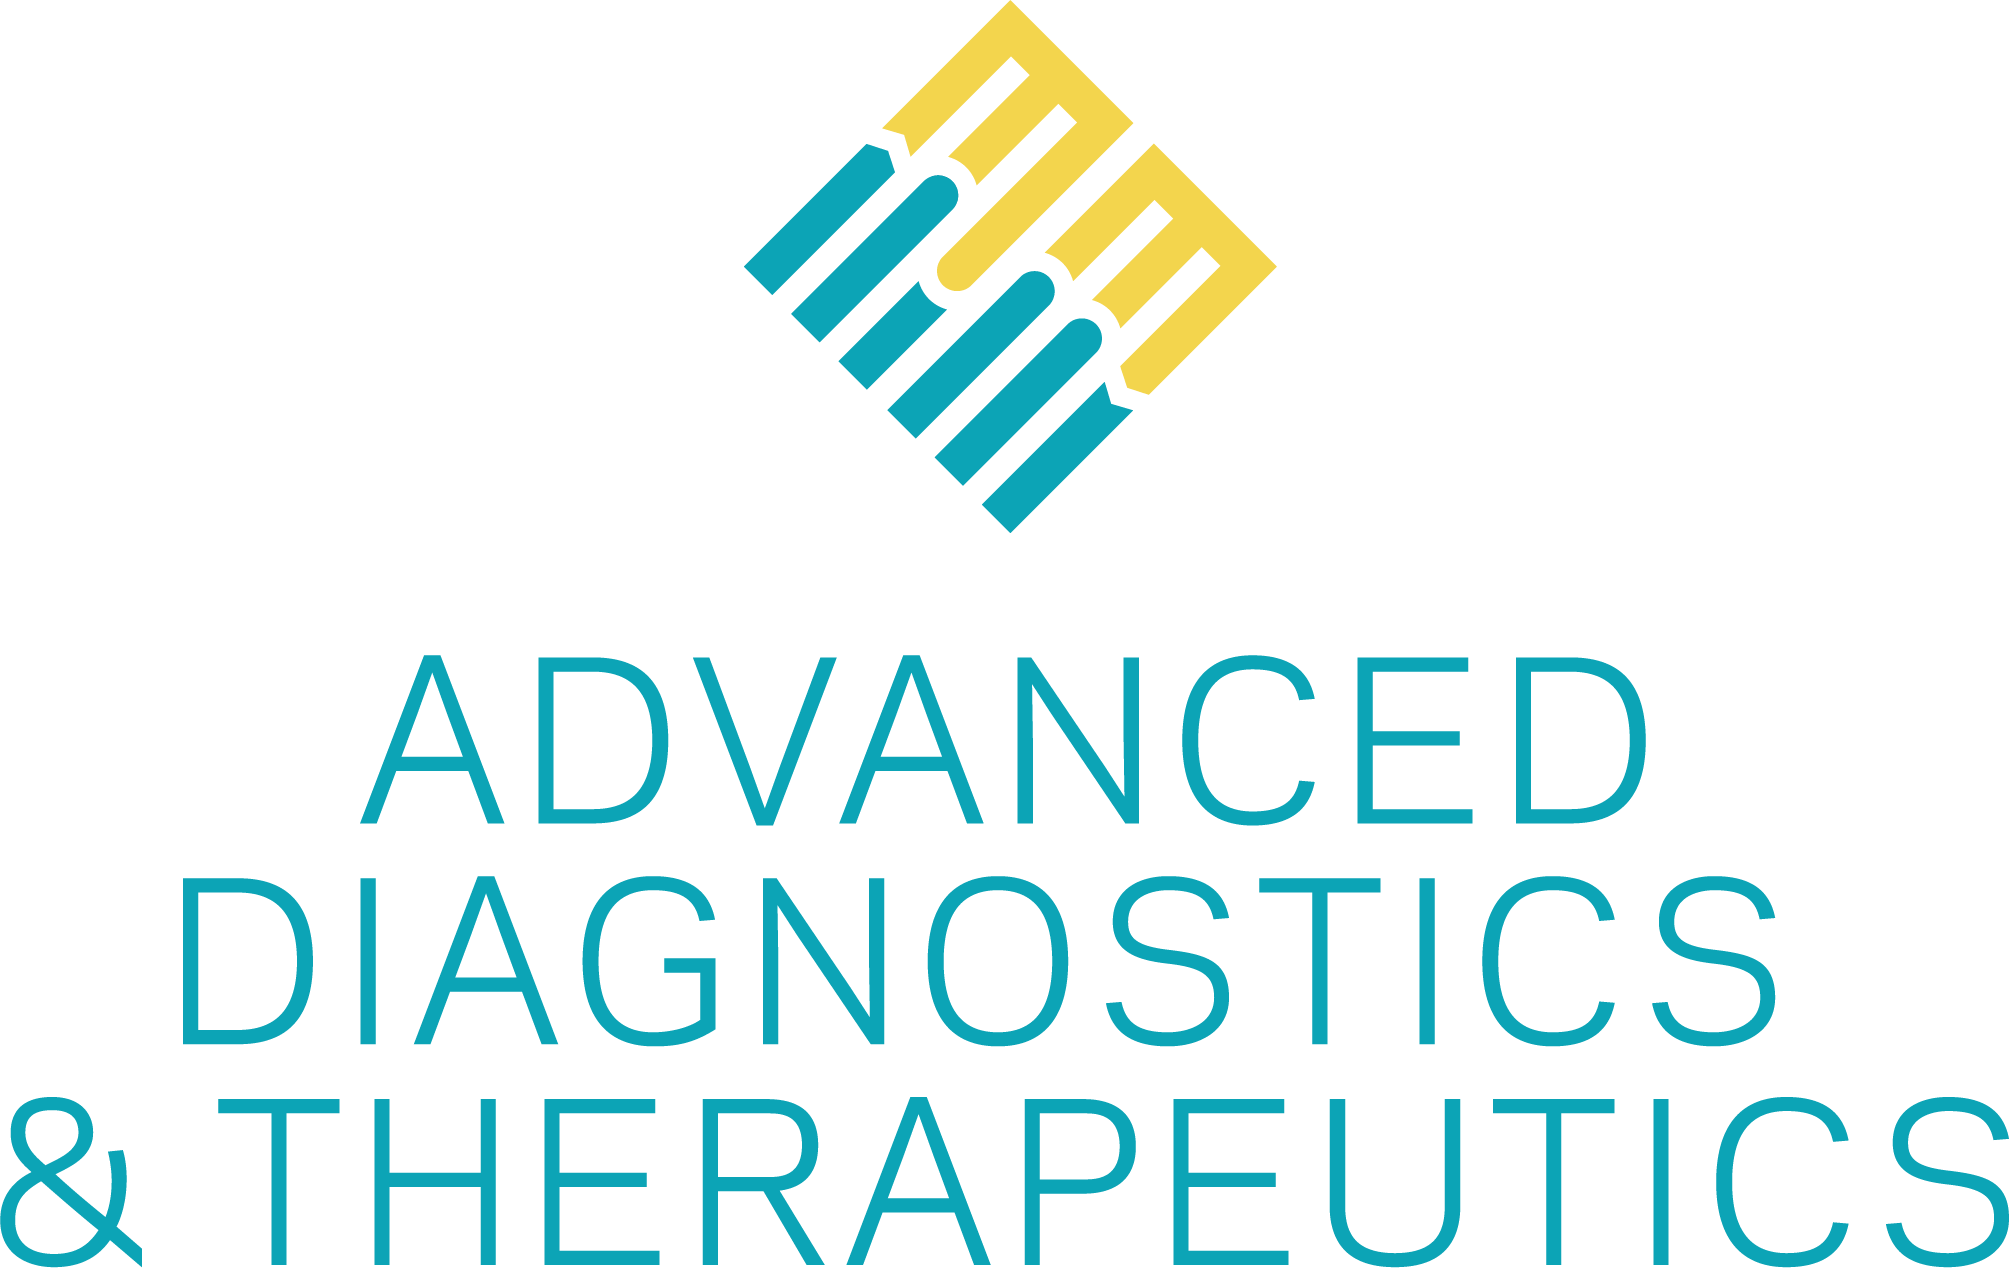 Advanced Diagnostics & Therapeutics